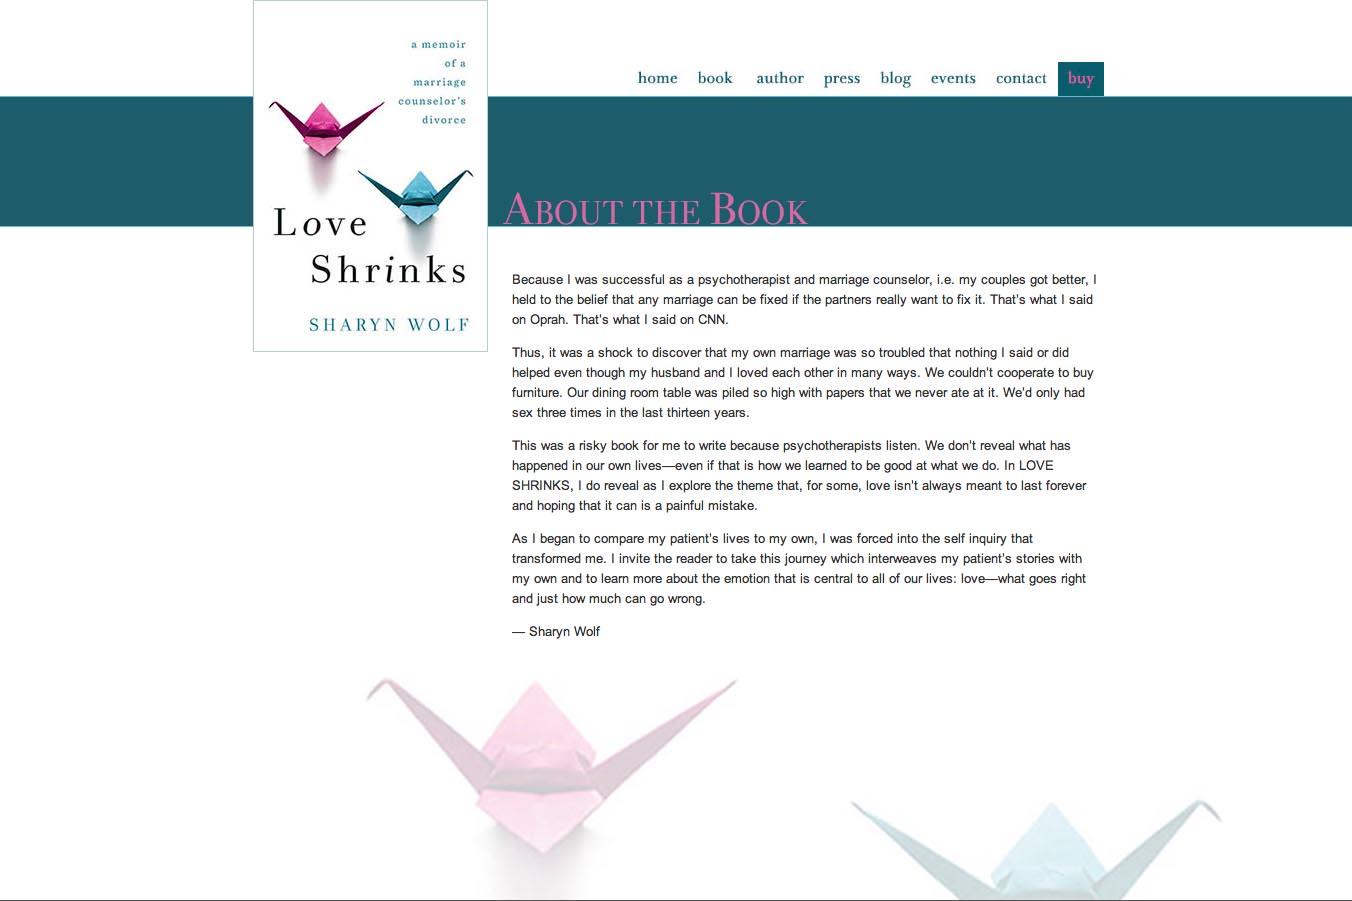 web design for a book by a relationships therapist - about the book page